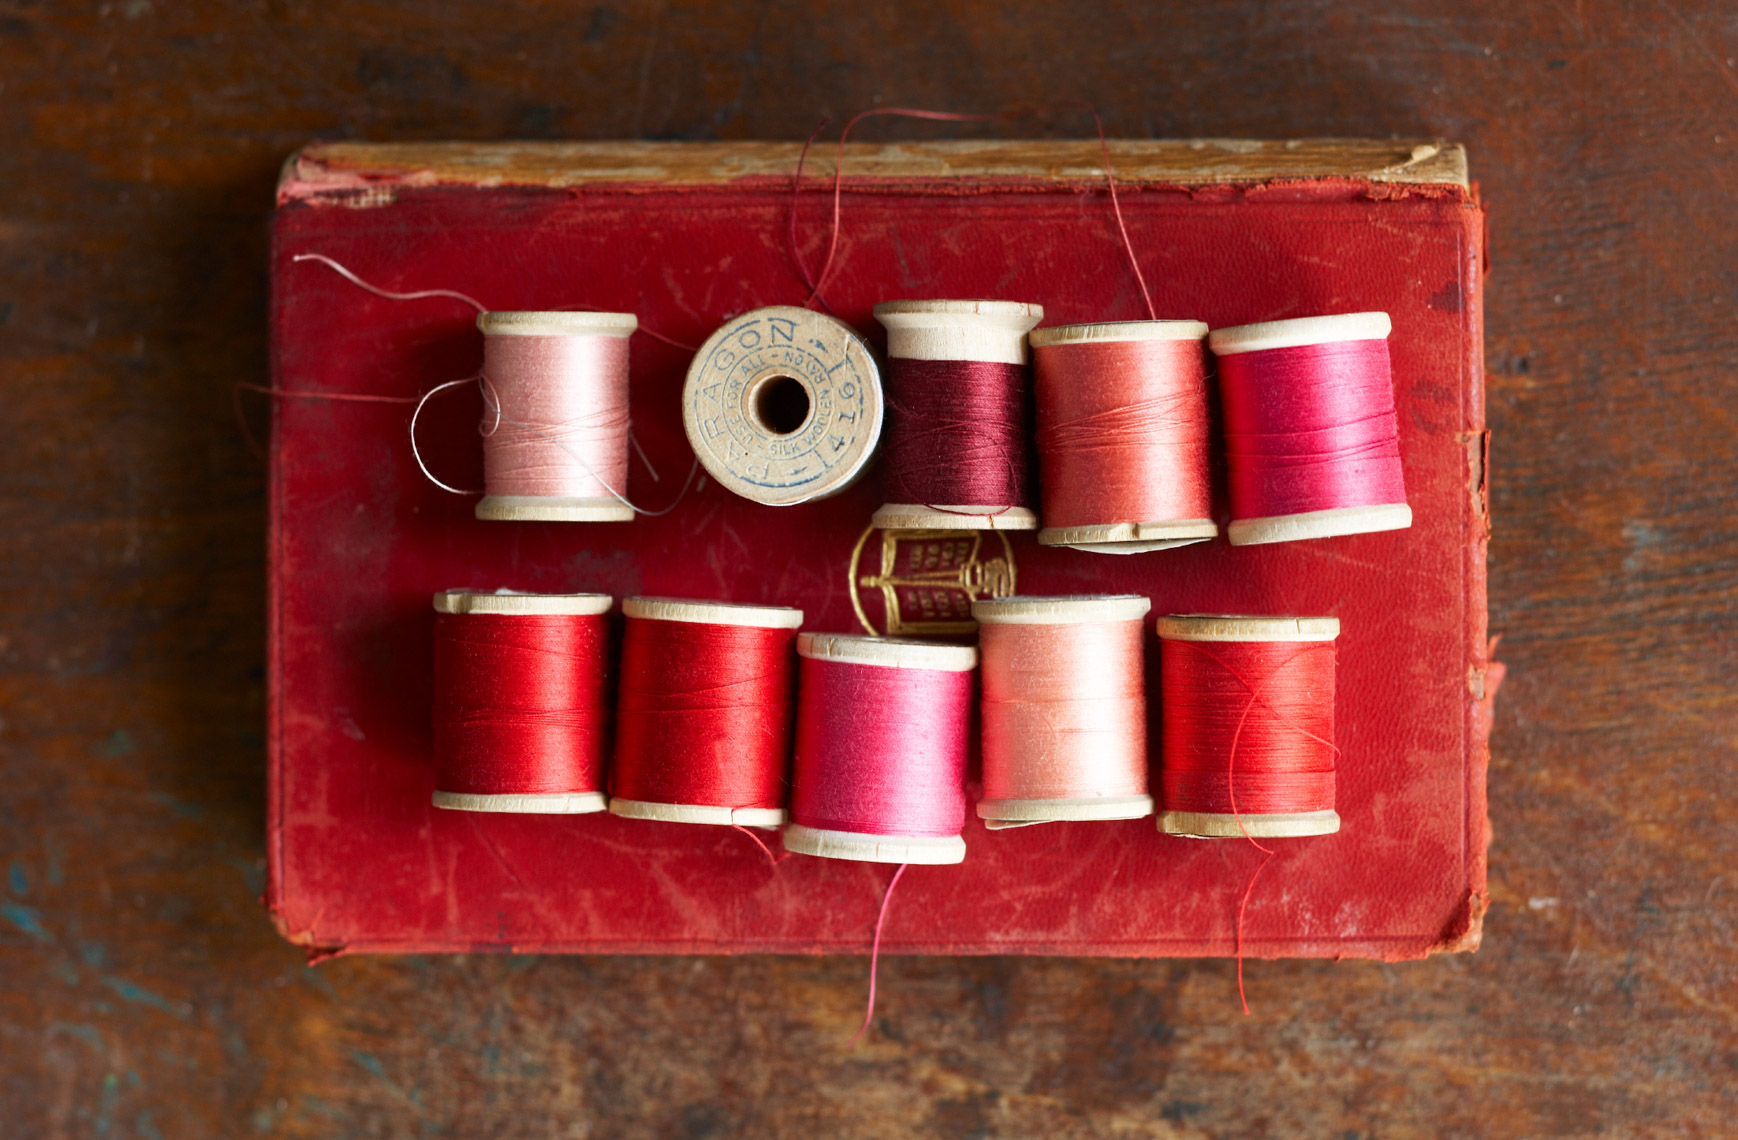 Spools of thread on book hilip Harvey Photography, San Francisco, California, still life, interiors, food, lifestyle and product photography